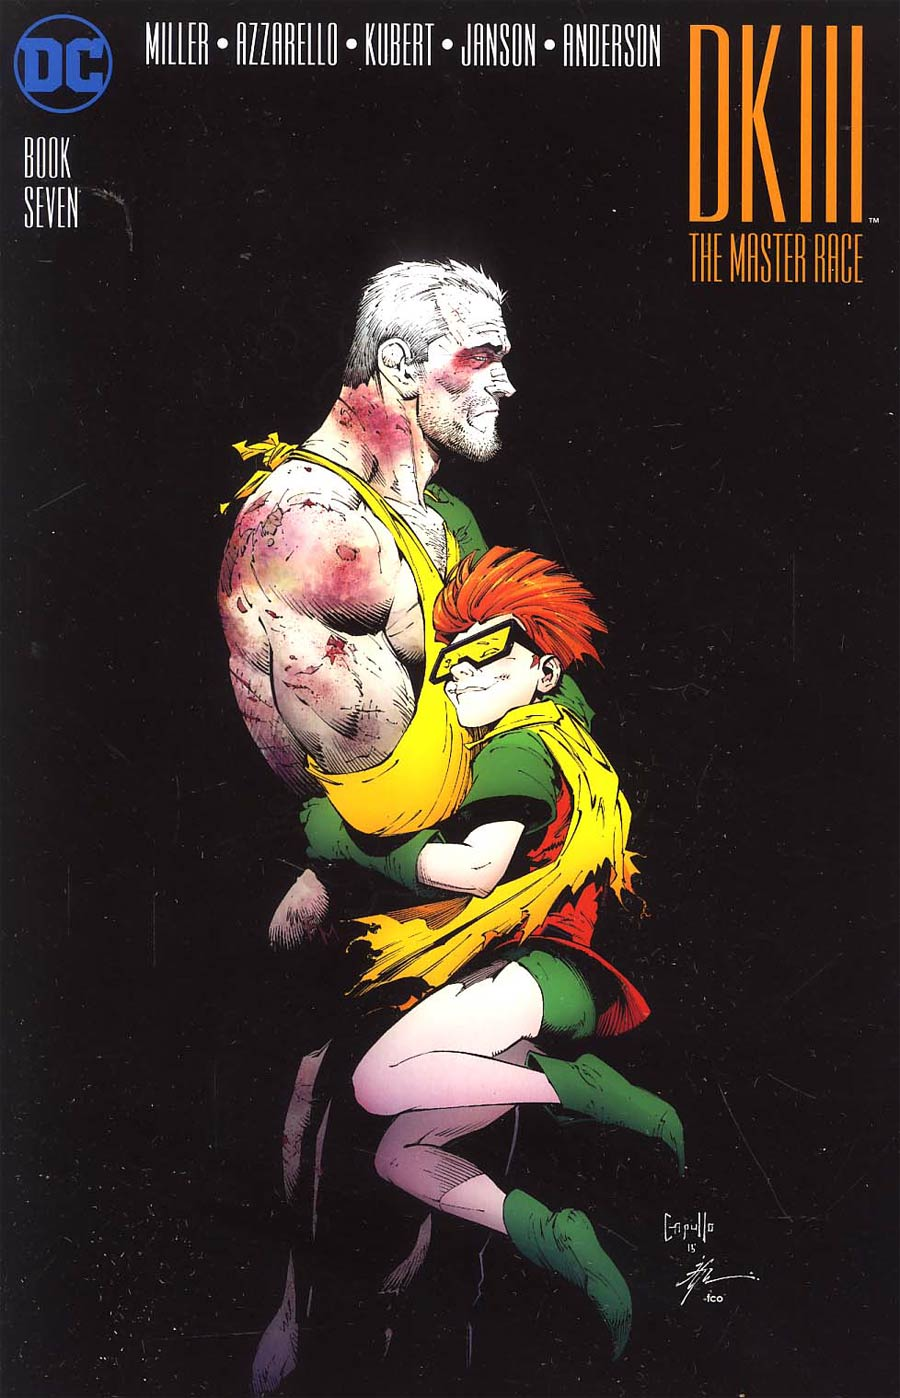 Dark Knight III The Master Race #7 Cover B Midtown Exclusive Greg Capullo Color Variant Cover